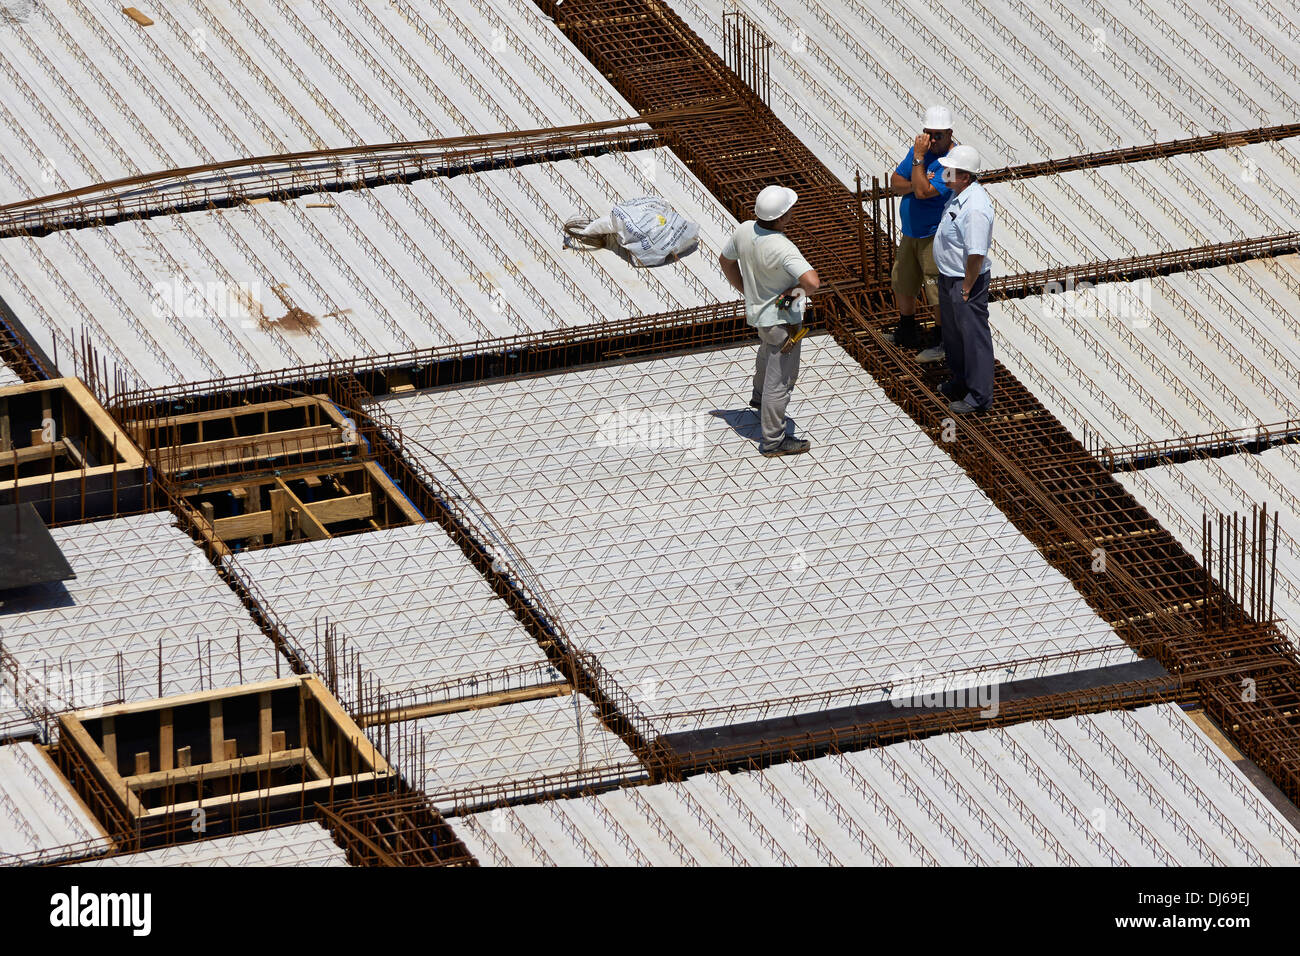 Inspection of a precast reinforced concrete ceiling - Stock Image